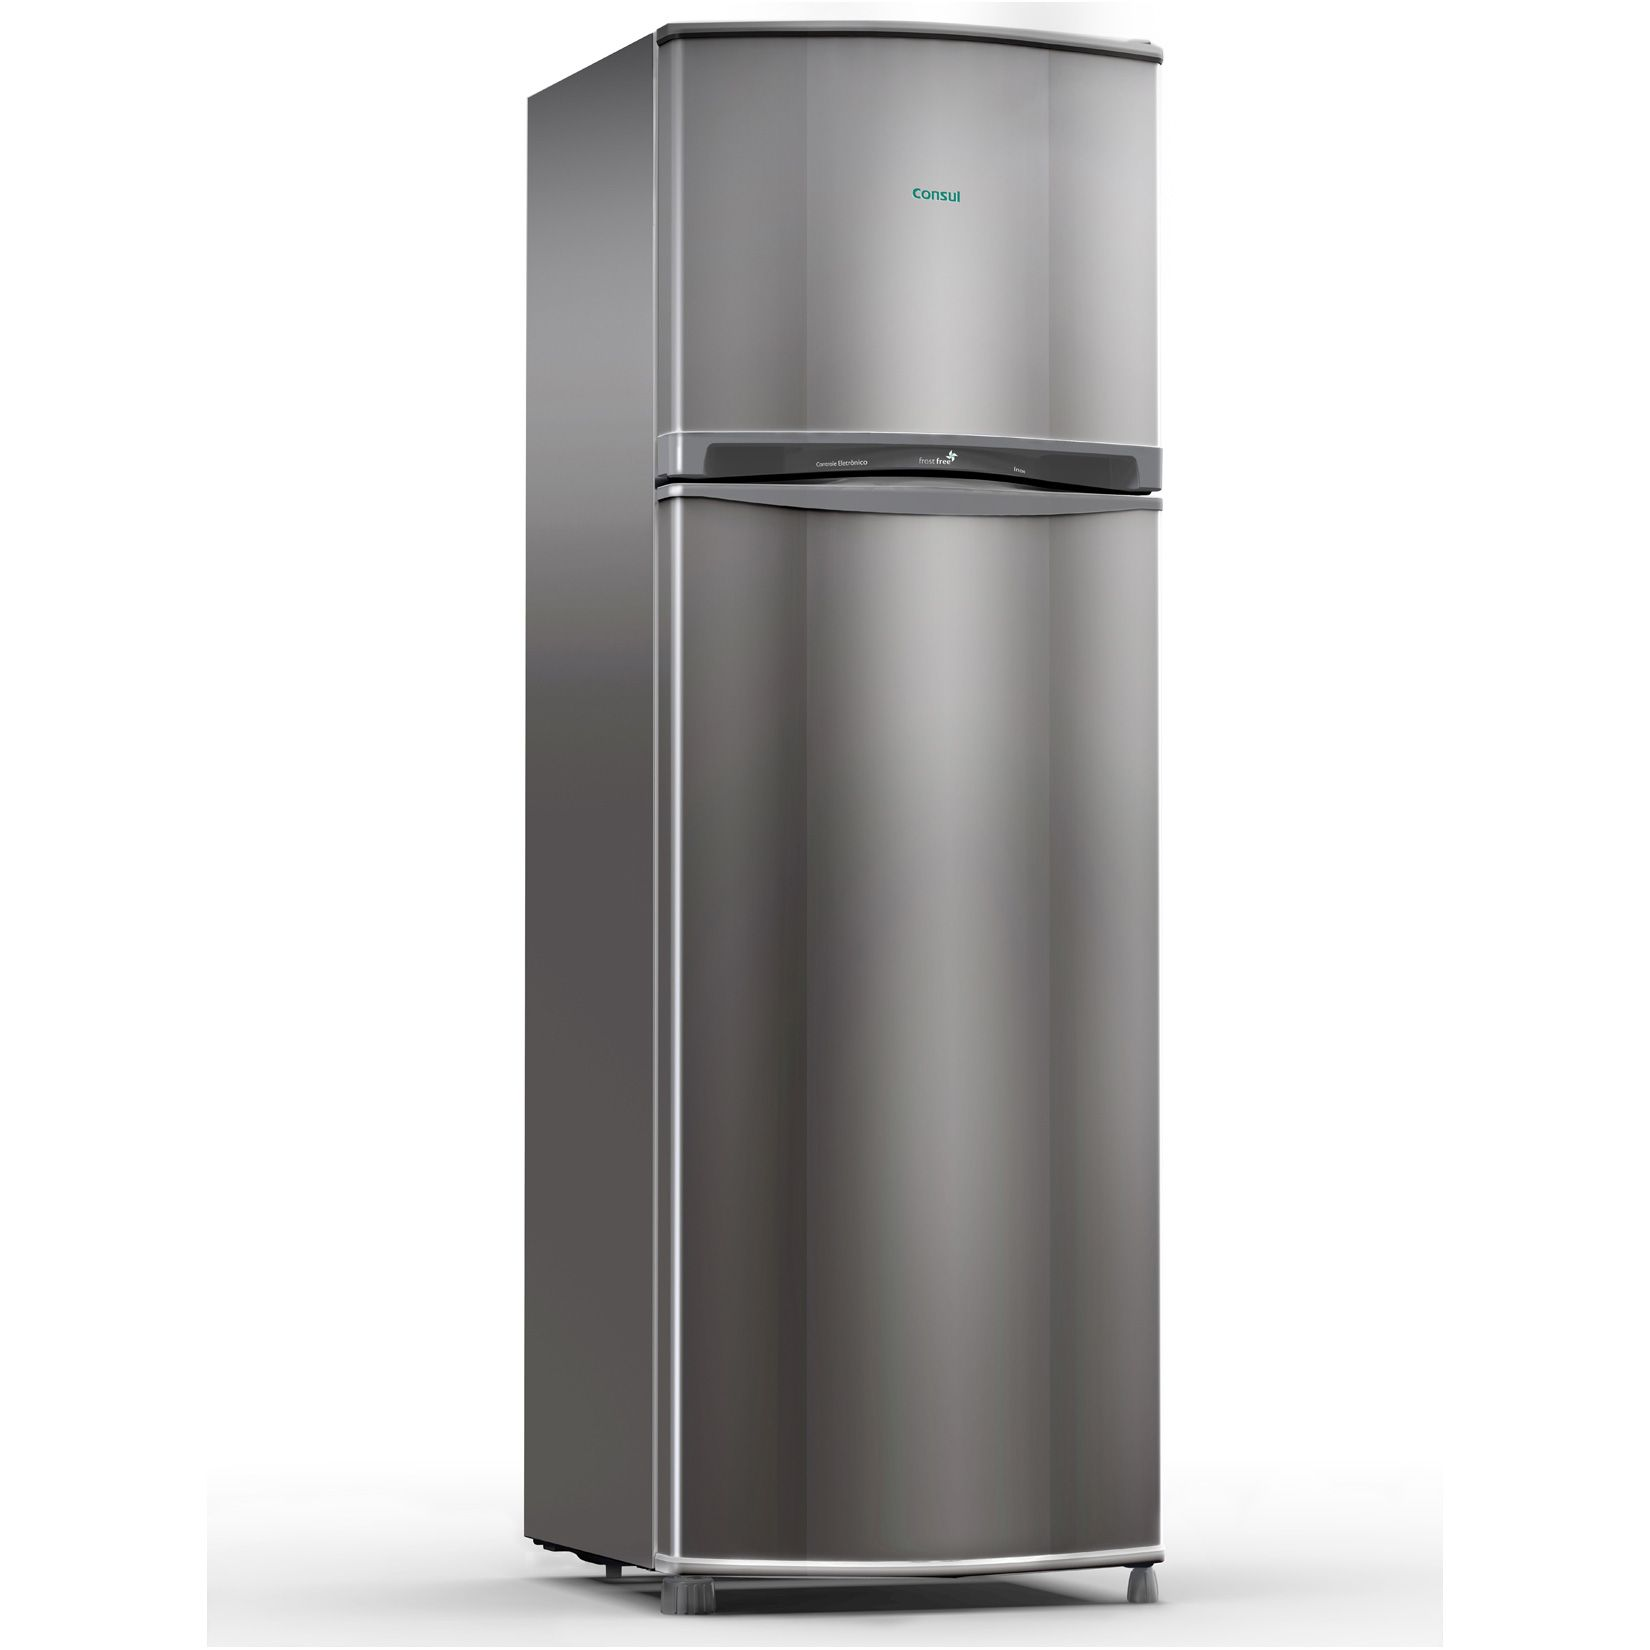 Geladeira consul frost free 263l cor inox for What was a consul